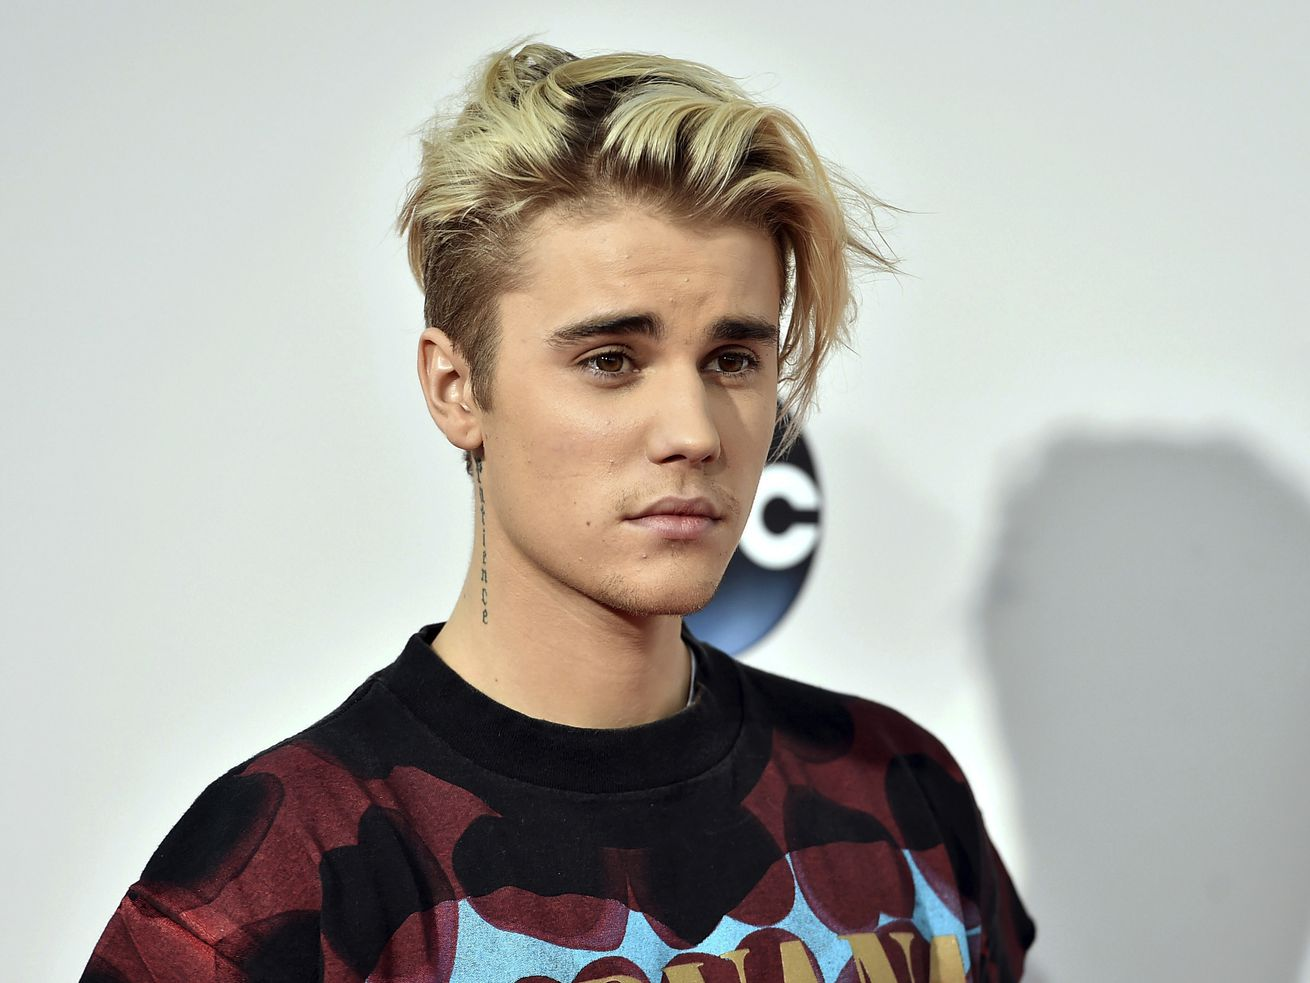 Justin Bieber says God 'brought me out of a really dark place'